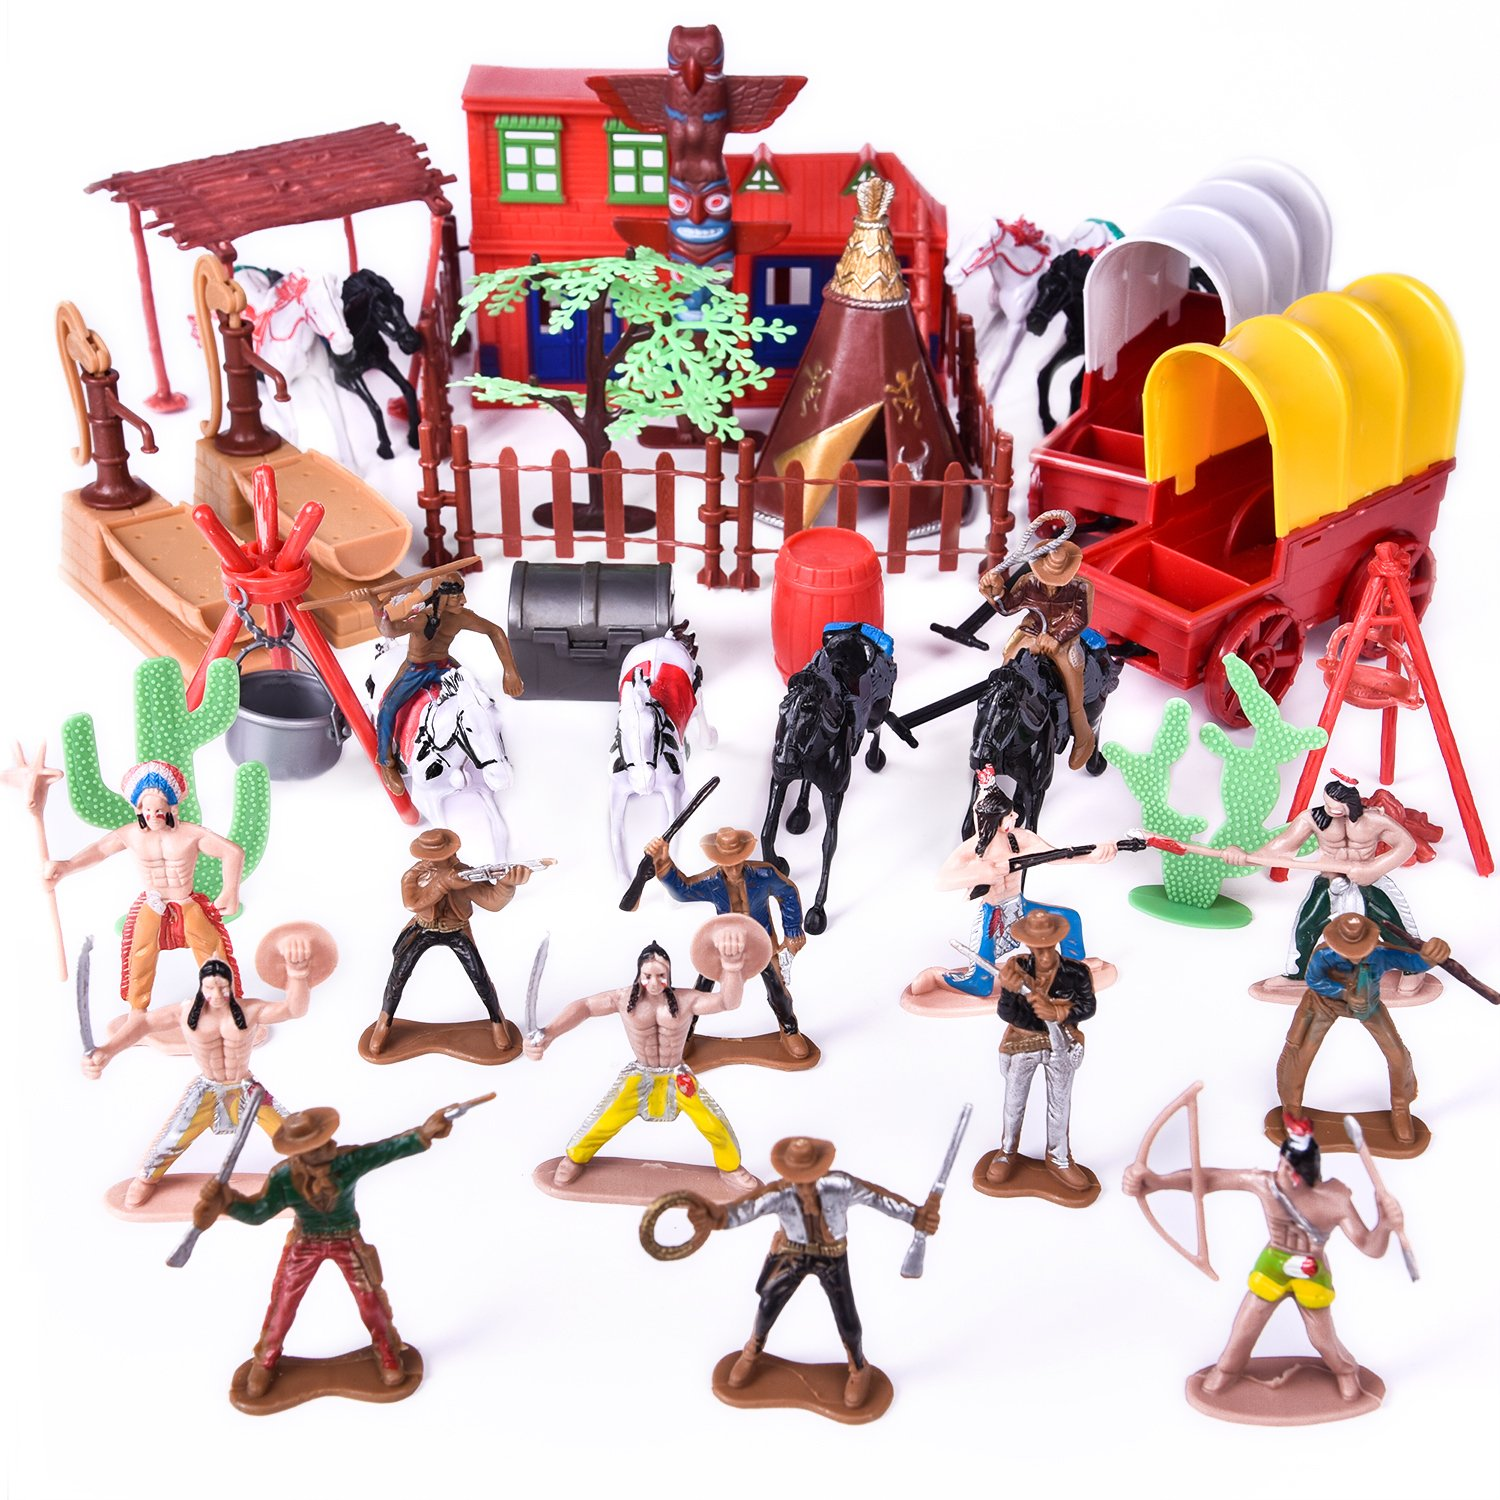 Kitchen Set Toys India: Toy Soldiers Indians Cowboys West, Plastic Figures Play